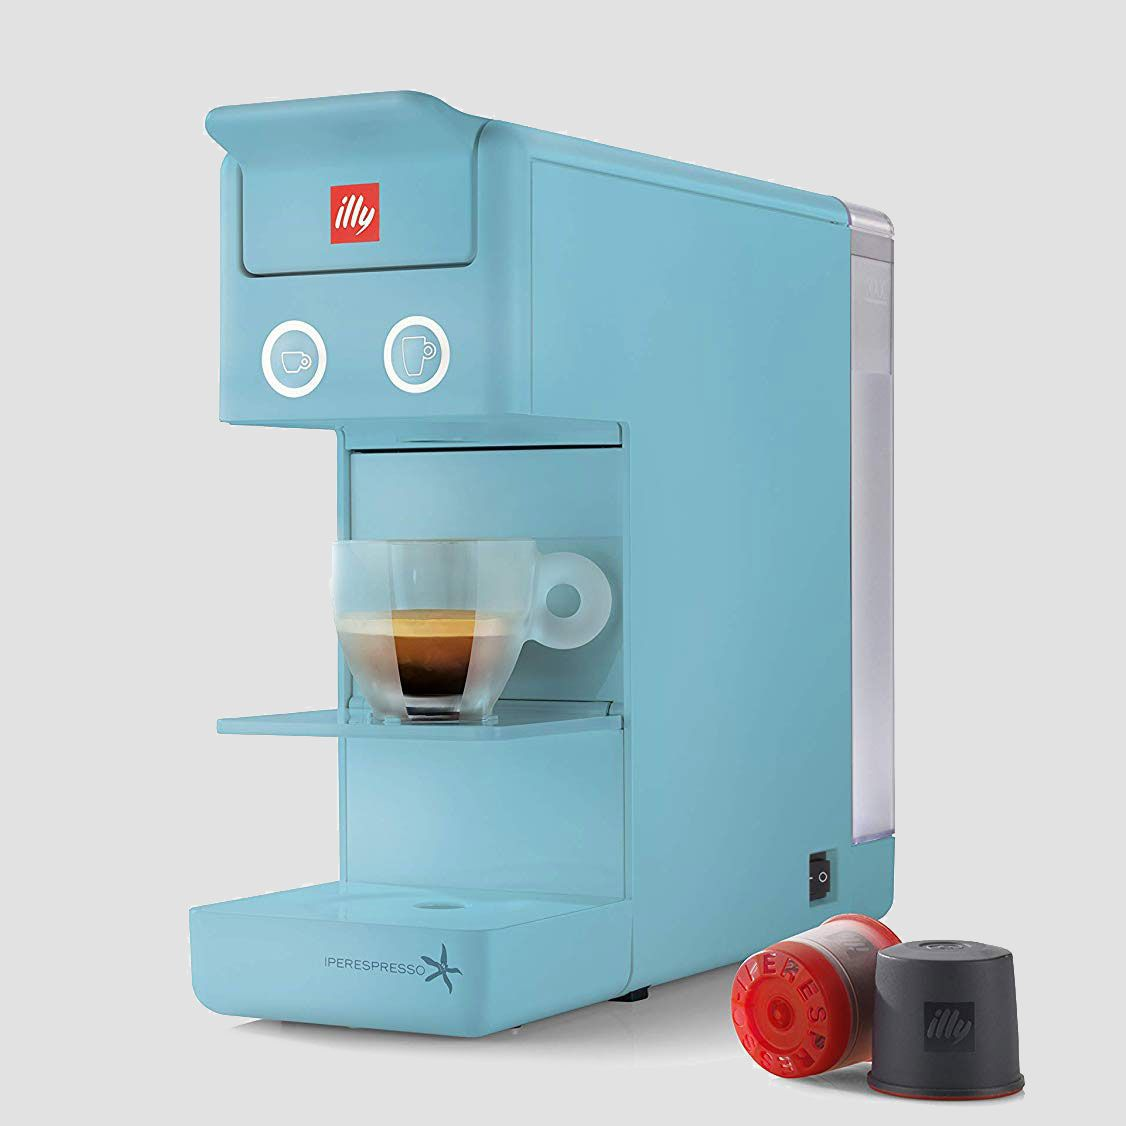 Illy Y3.2 iperEspresso and Coffee Machine